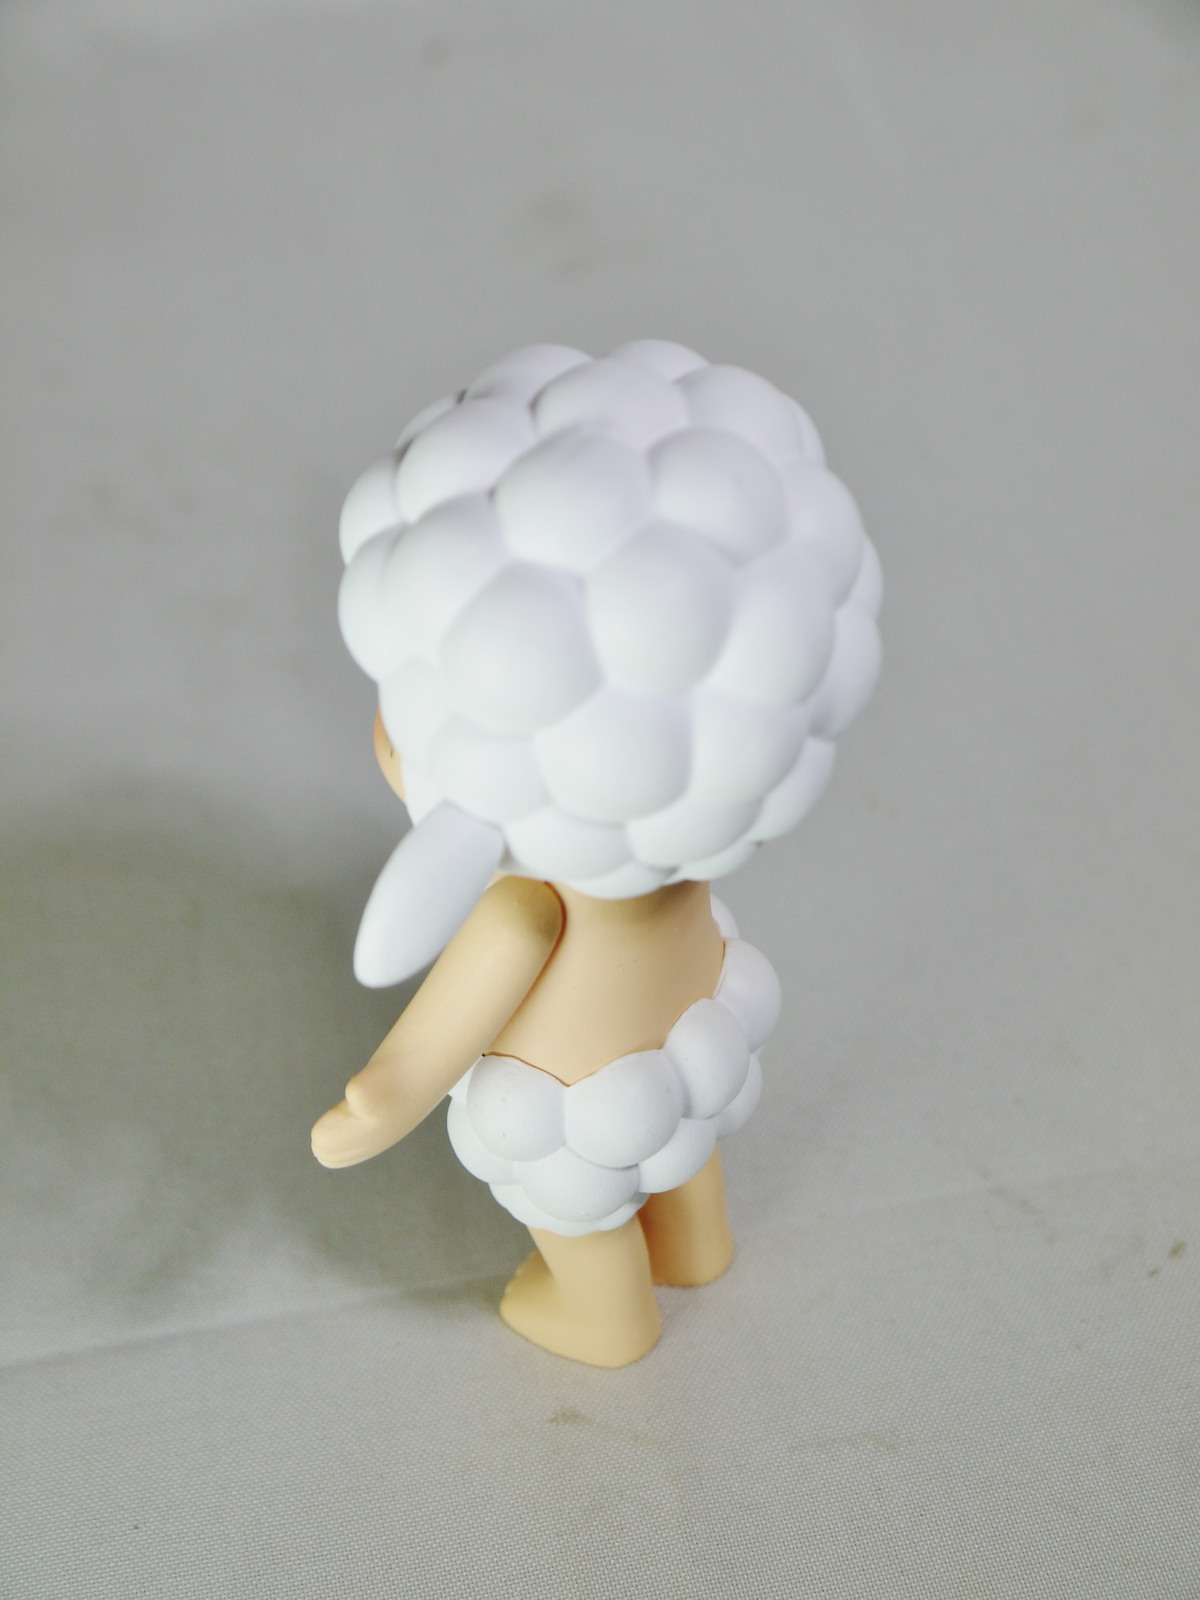 POP MART Kennyswork BLOCK Little Molly Chinese Zodiac Sheep White Mini Figure